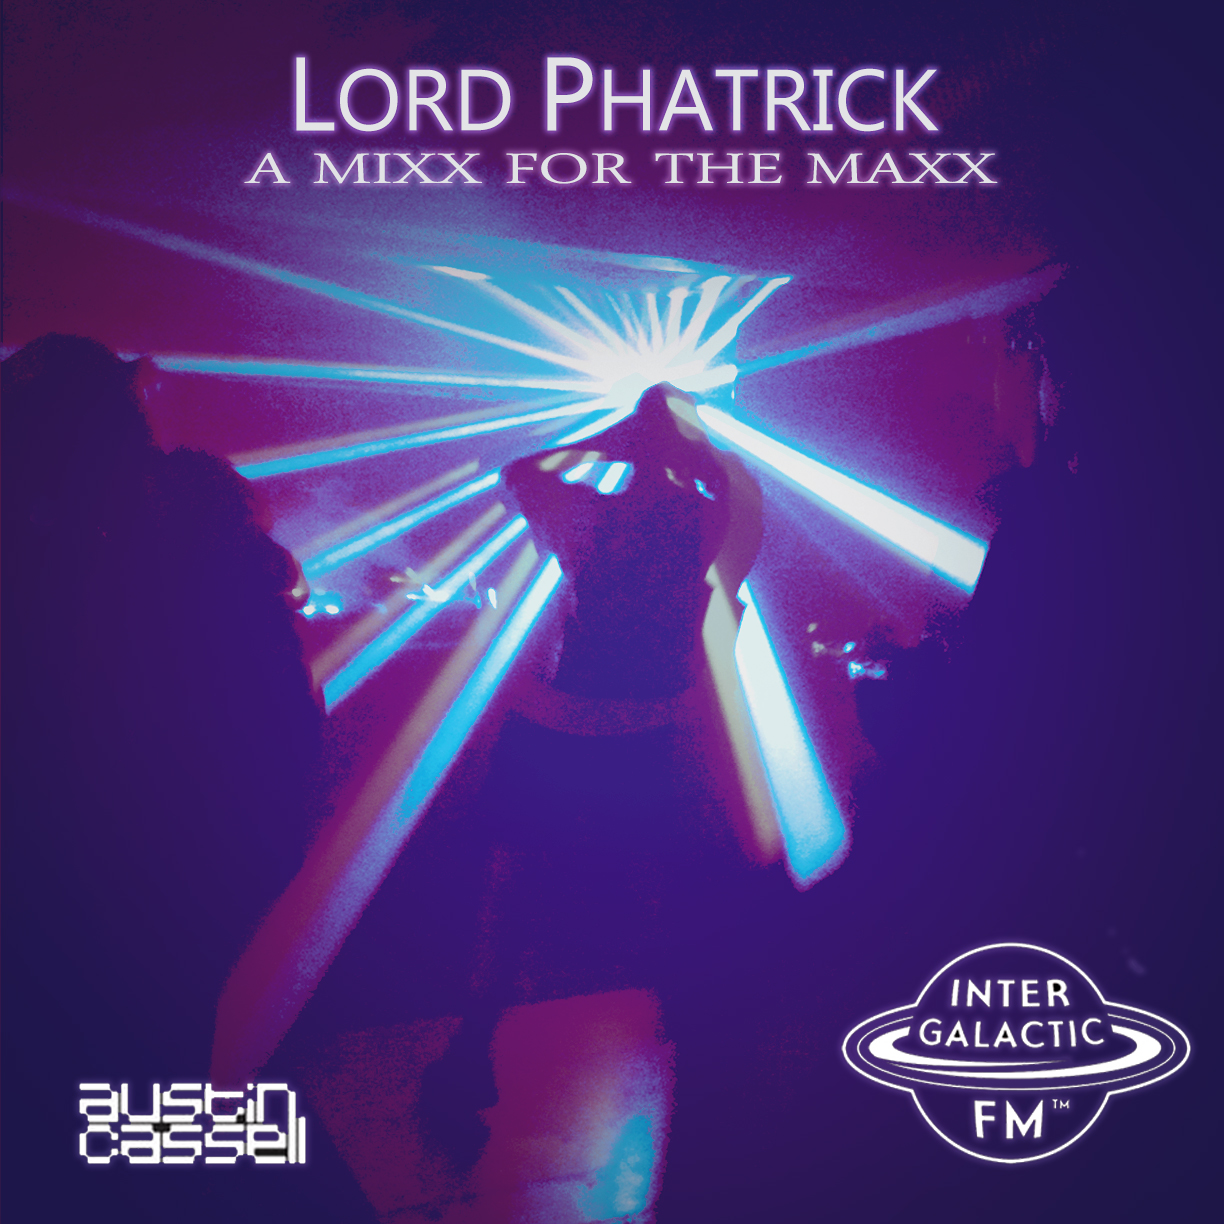 Lord Phatrick exclusive uploaded